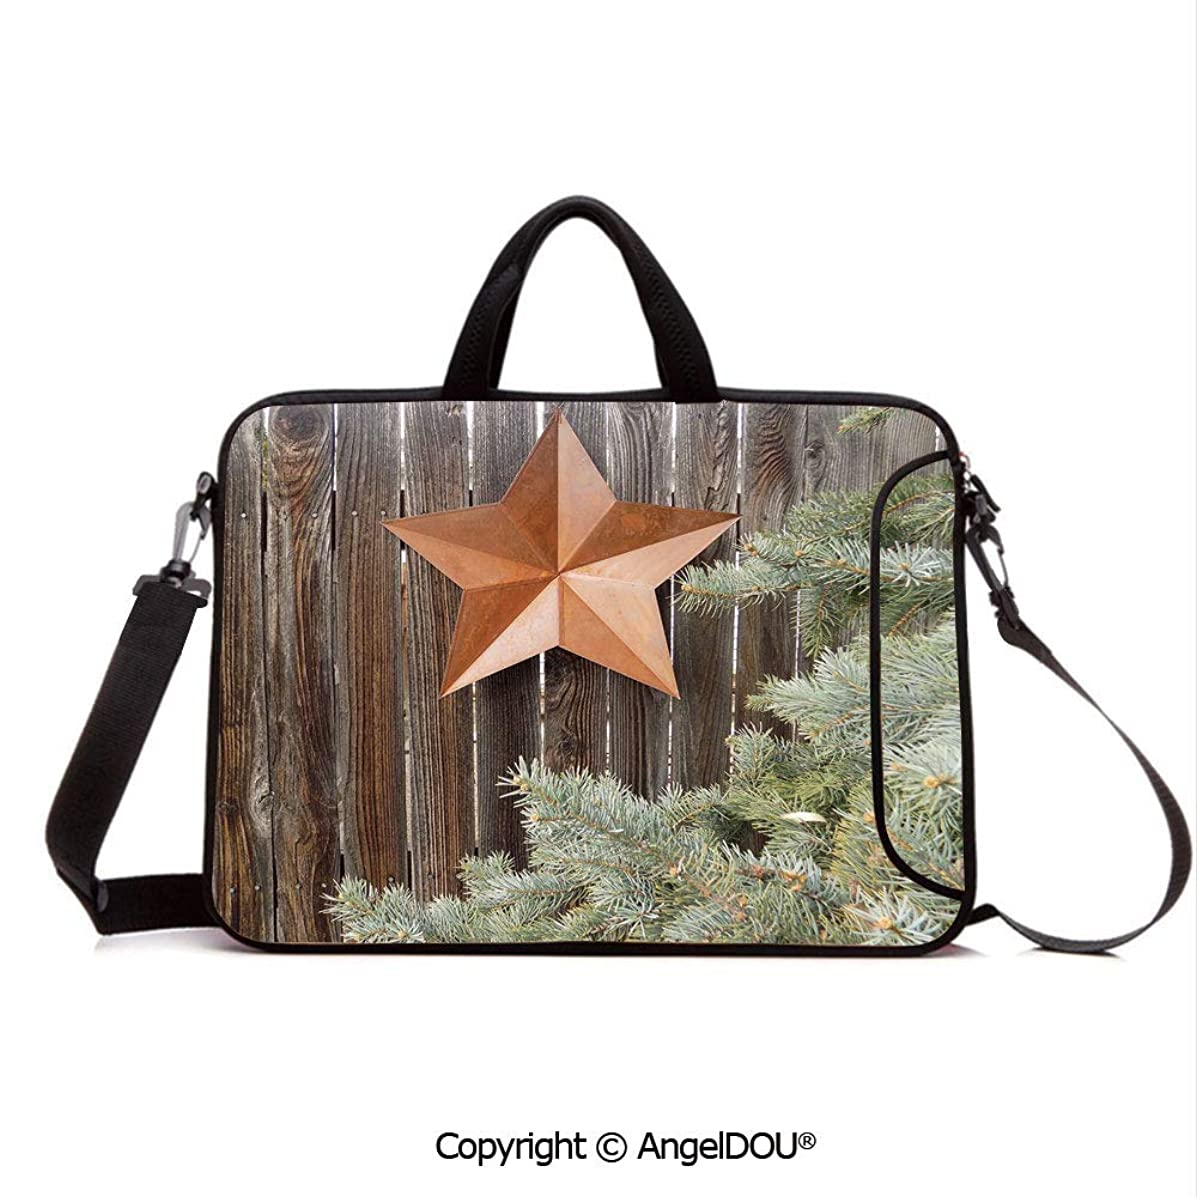 AngelDOU Laptop Shoulder Bag Waterproof Neoprene Computer Case Big Orange Star on Rough Wood Fences Pine Branches Print Decorative with Handle Adjustable Shoulder Strap and External Side Pocket Oran